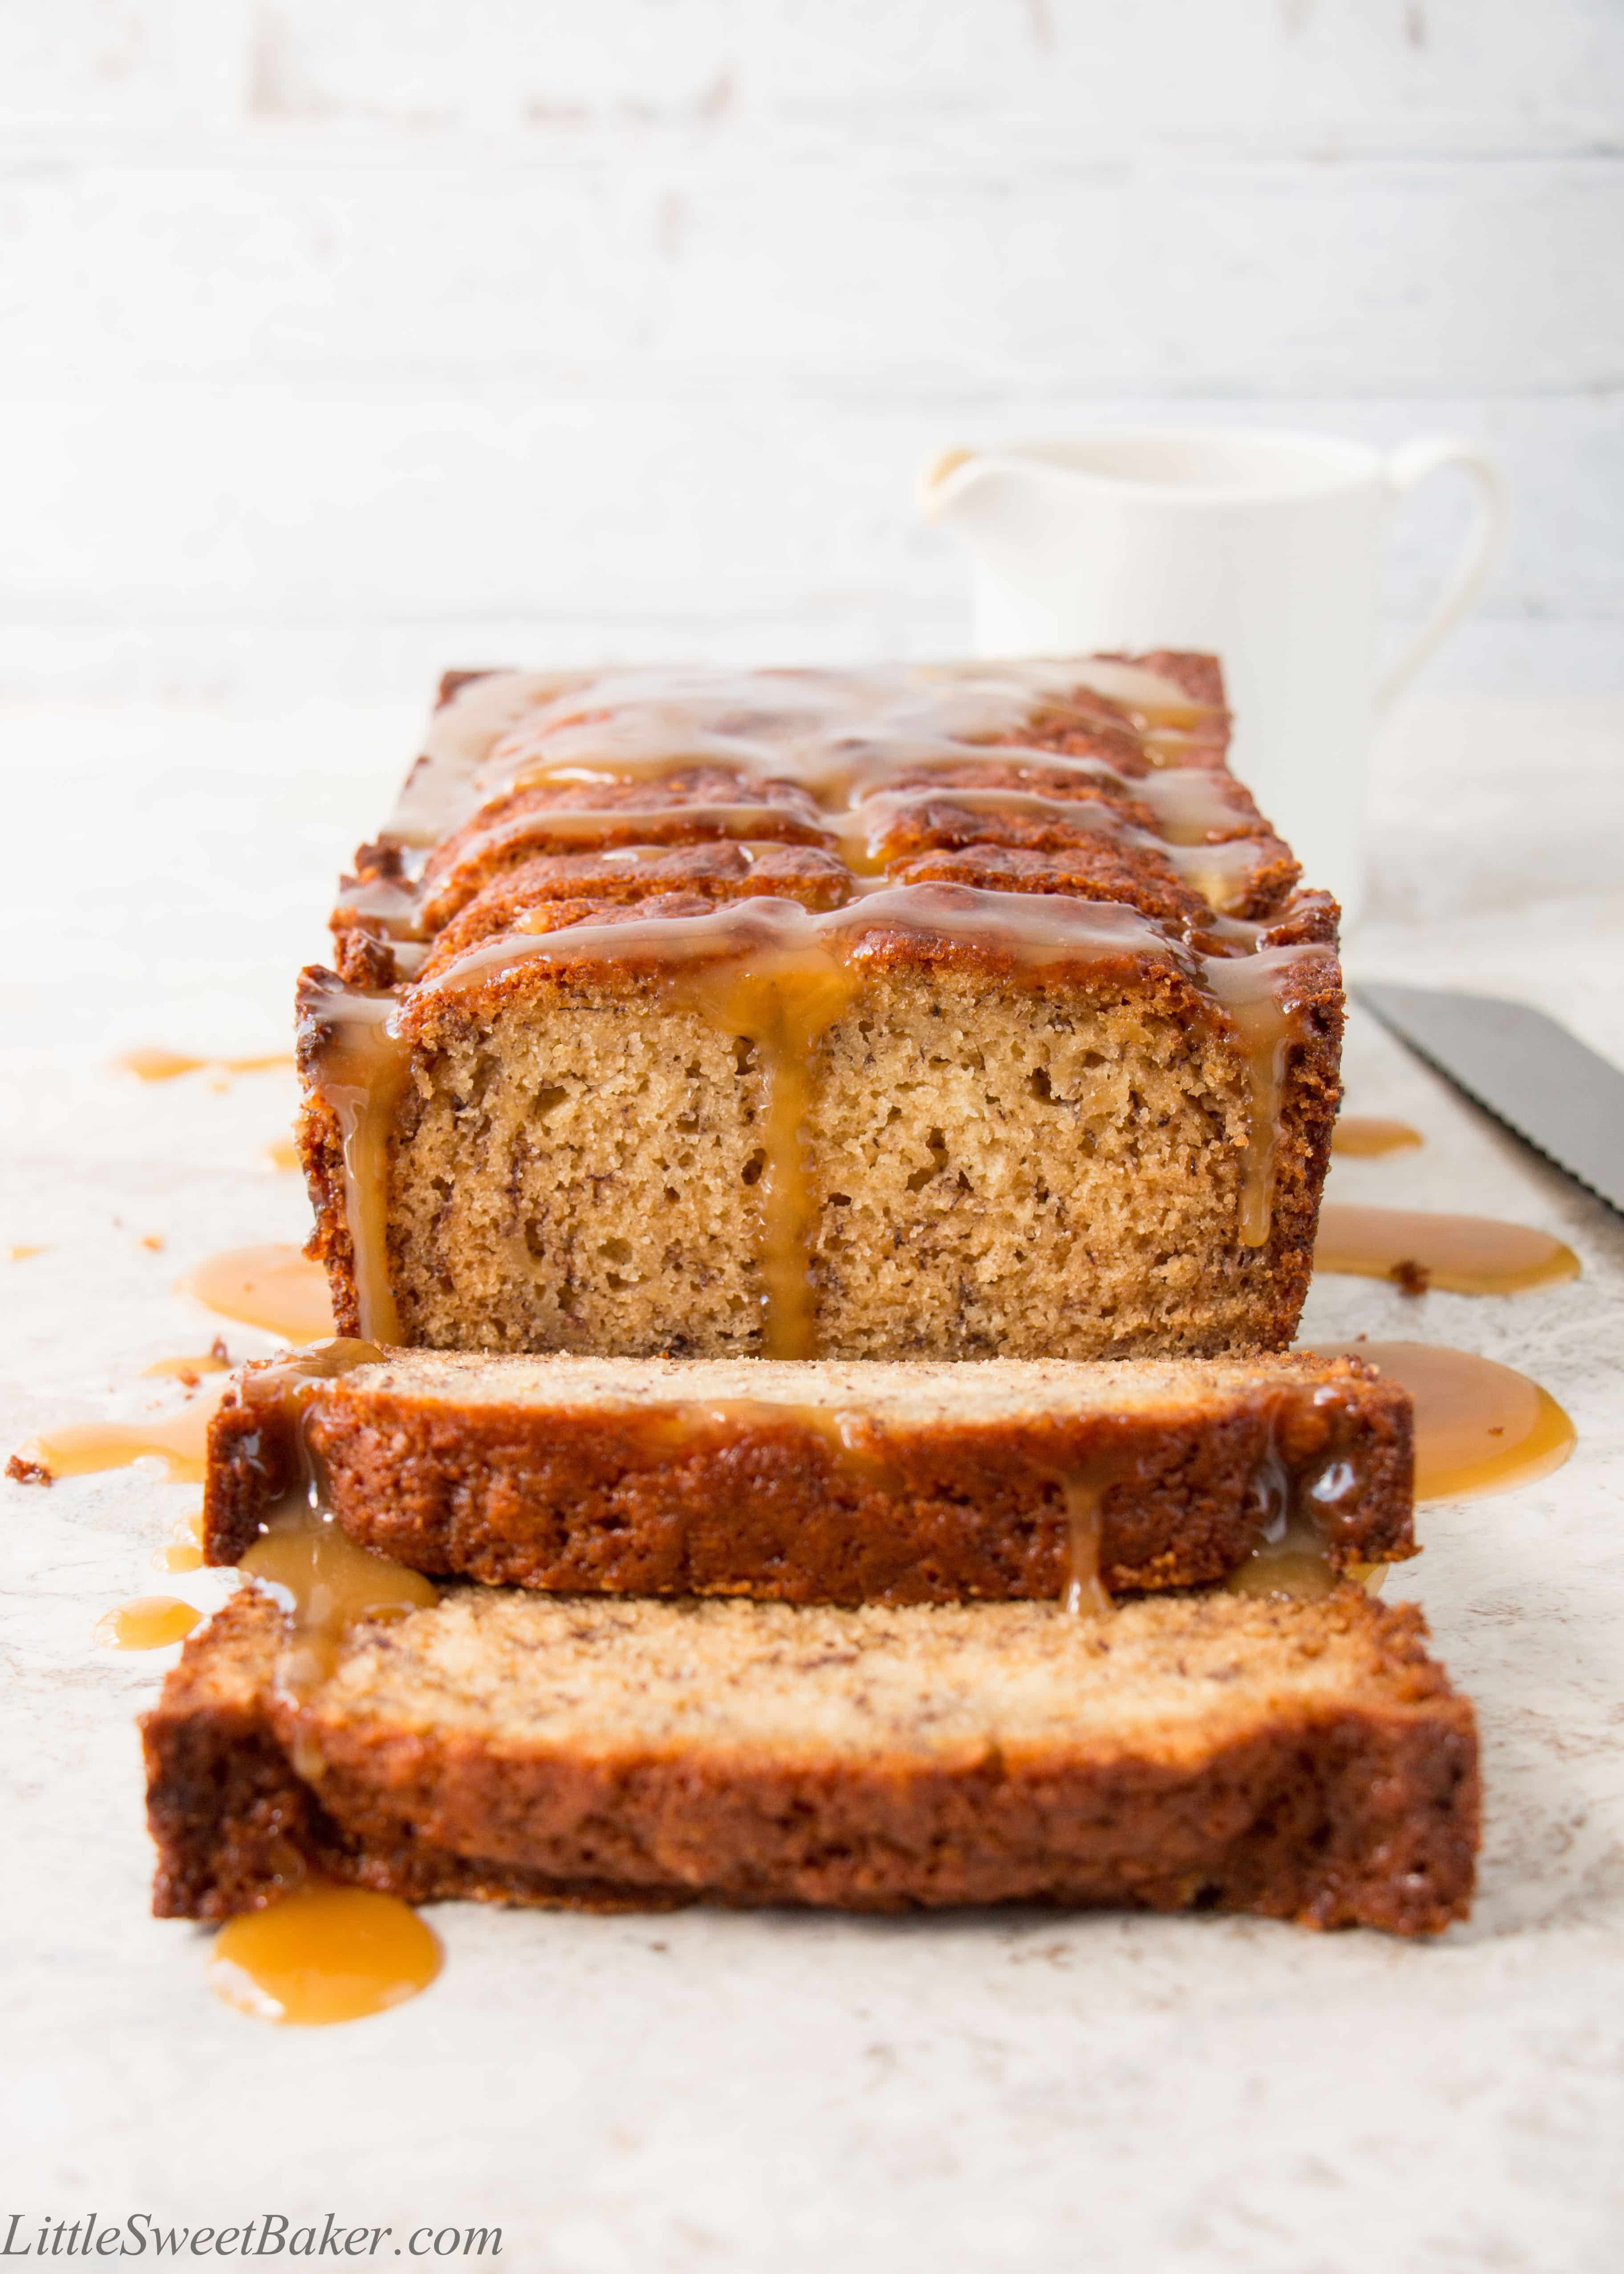 Salted caramel banana bread little sweet baker the flavor of salted caramel infused into a soft and moist banana bread then drizzled forumfinder Choice Image